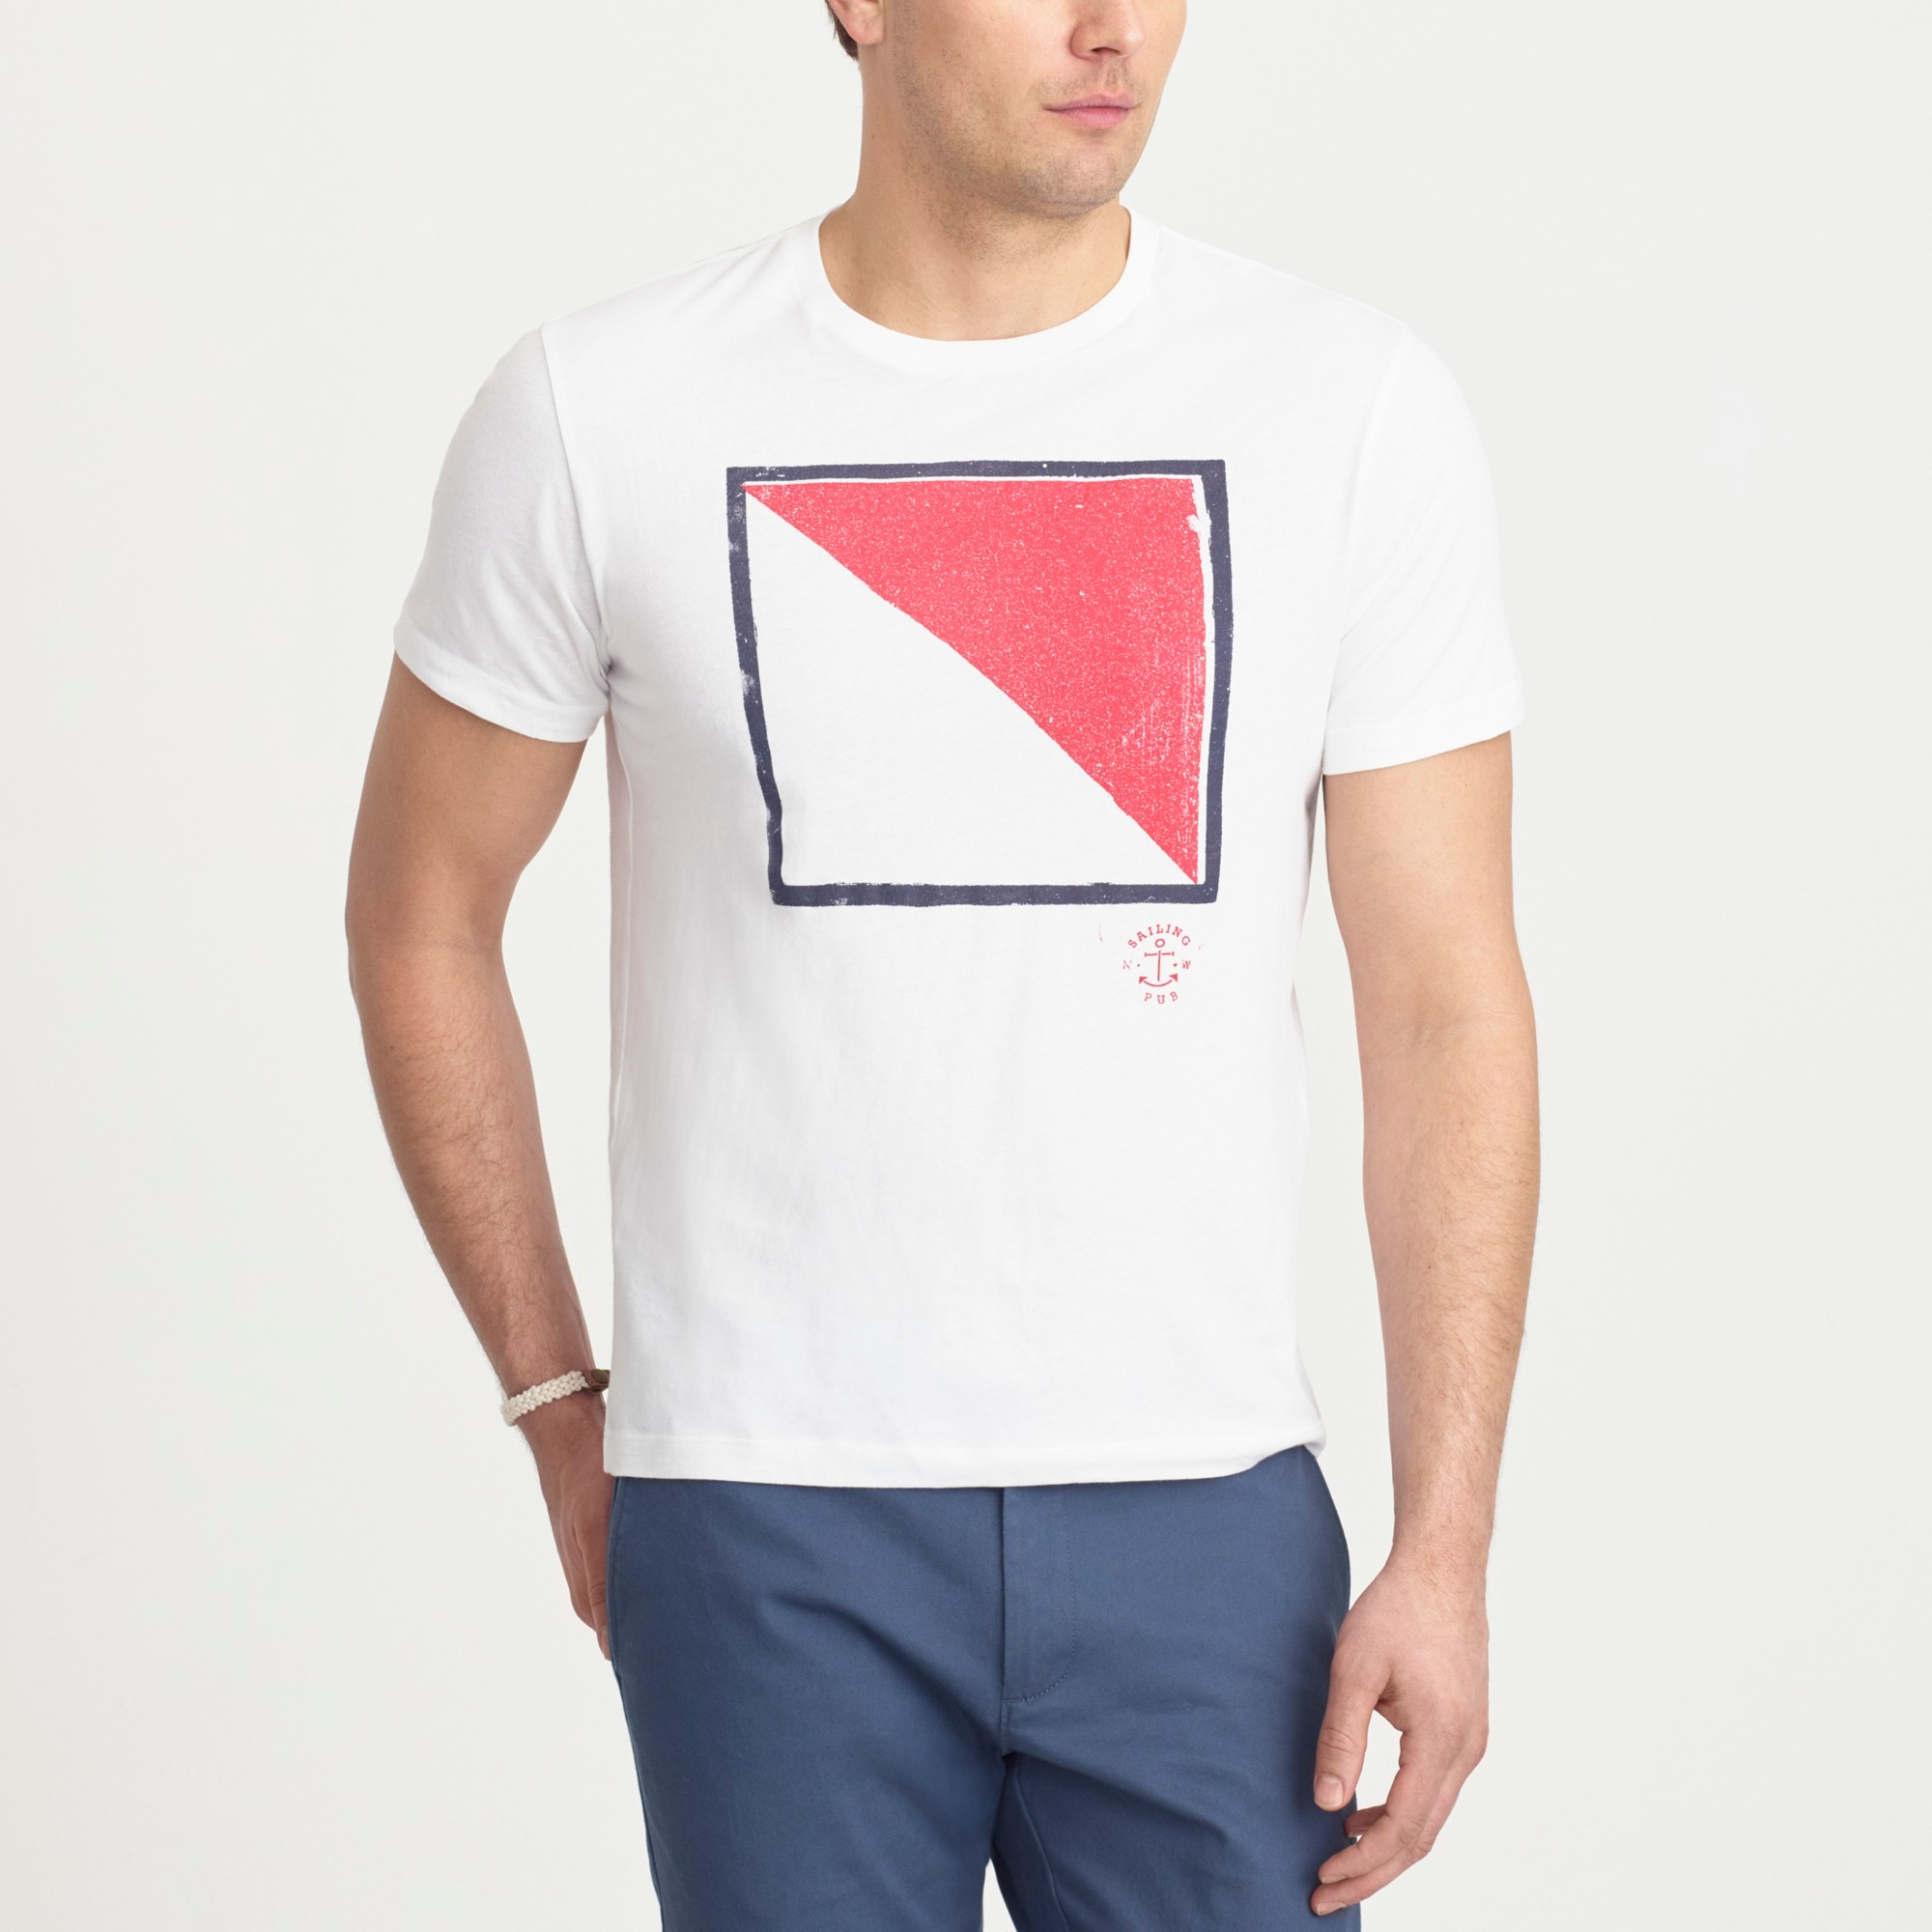 J.Crew Mercantile Broken-in nautical flag T-shirt factorymen t-shirts & henleys c